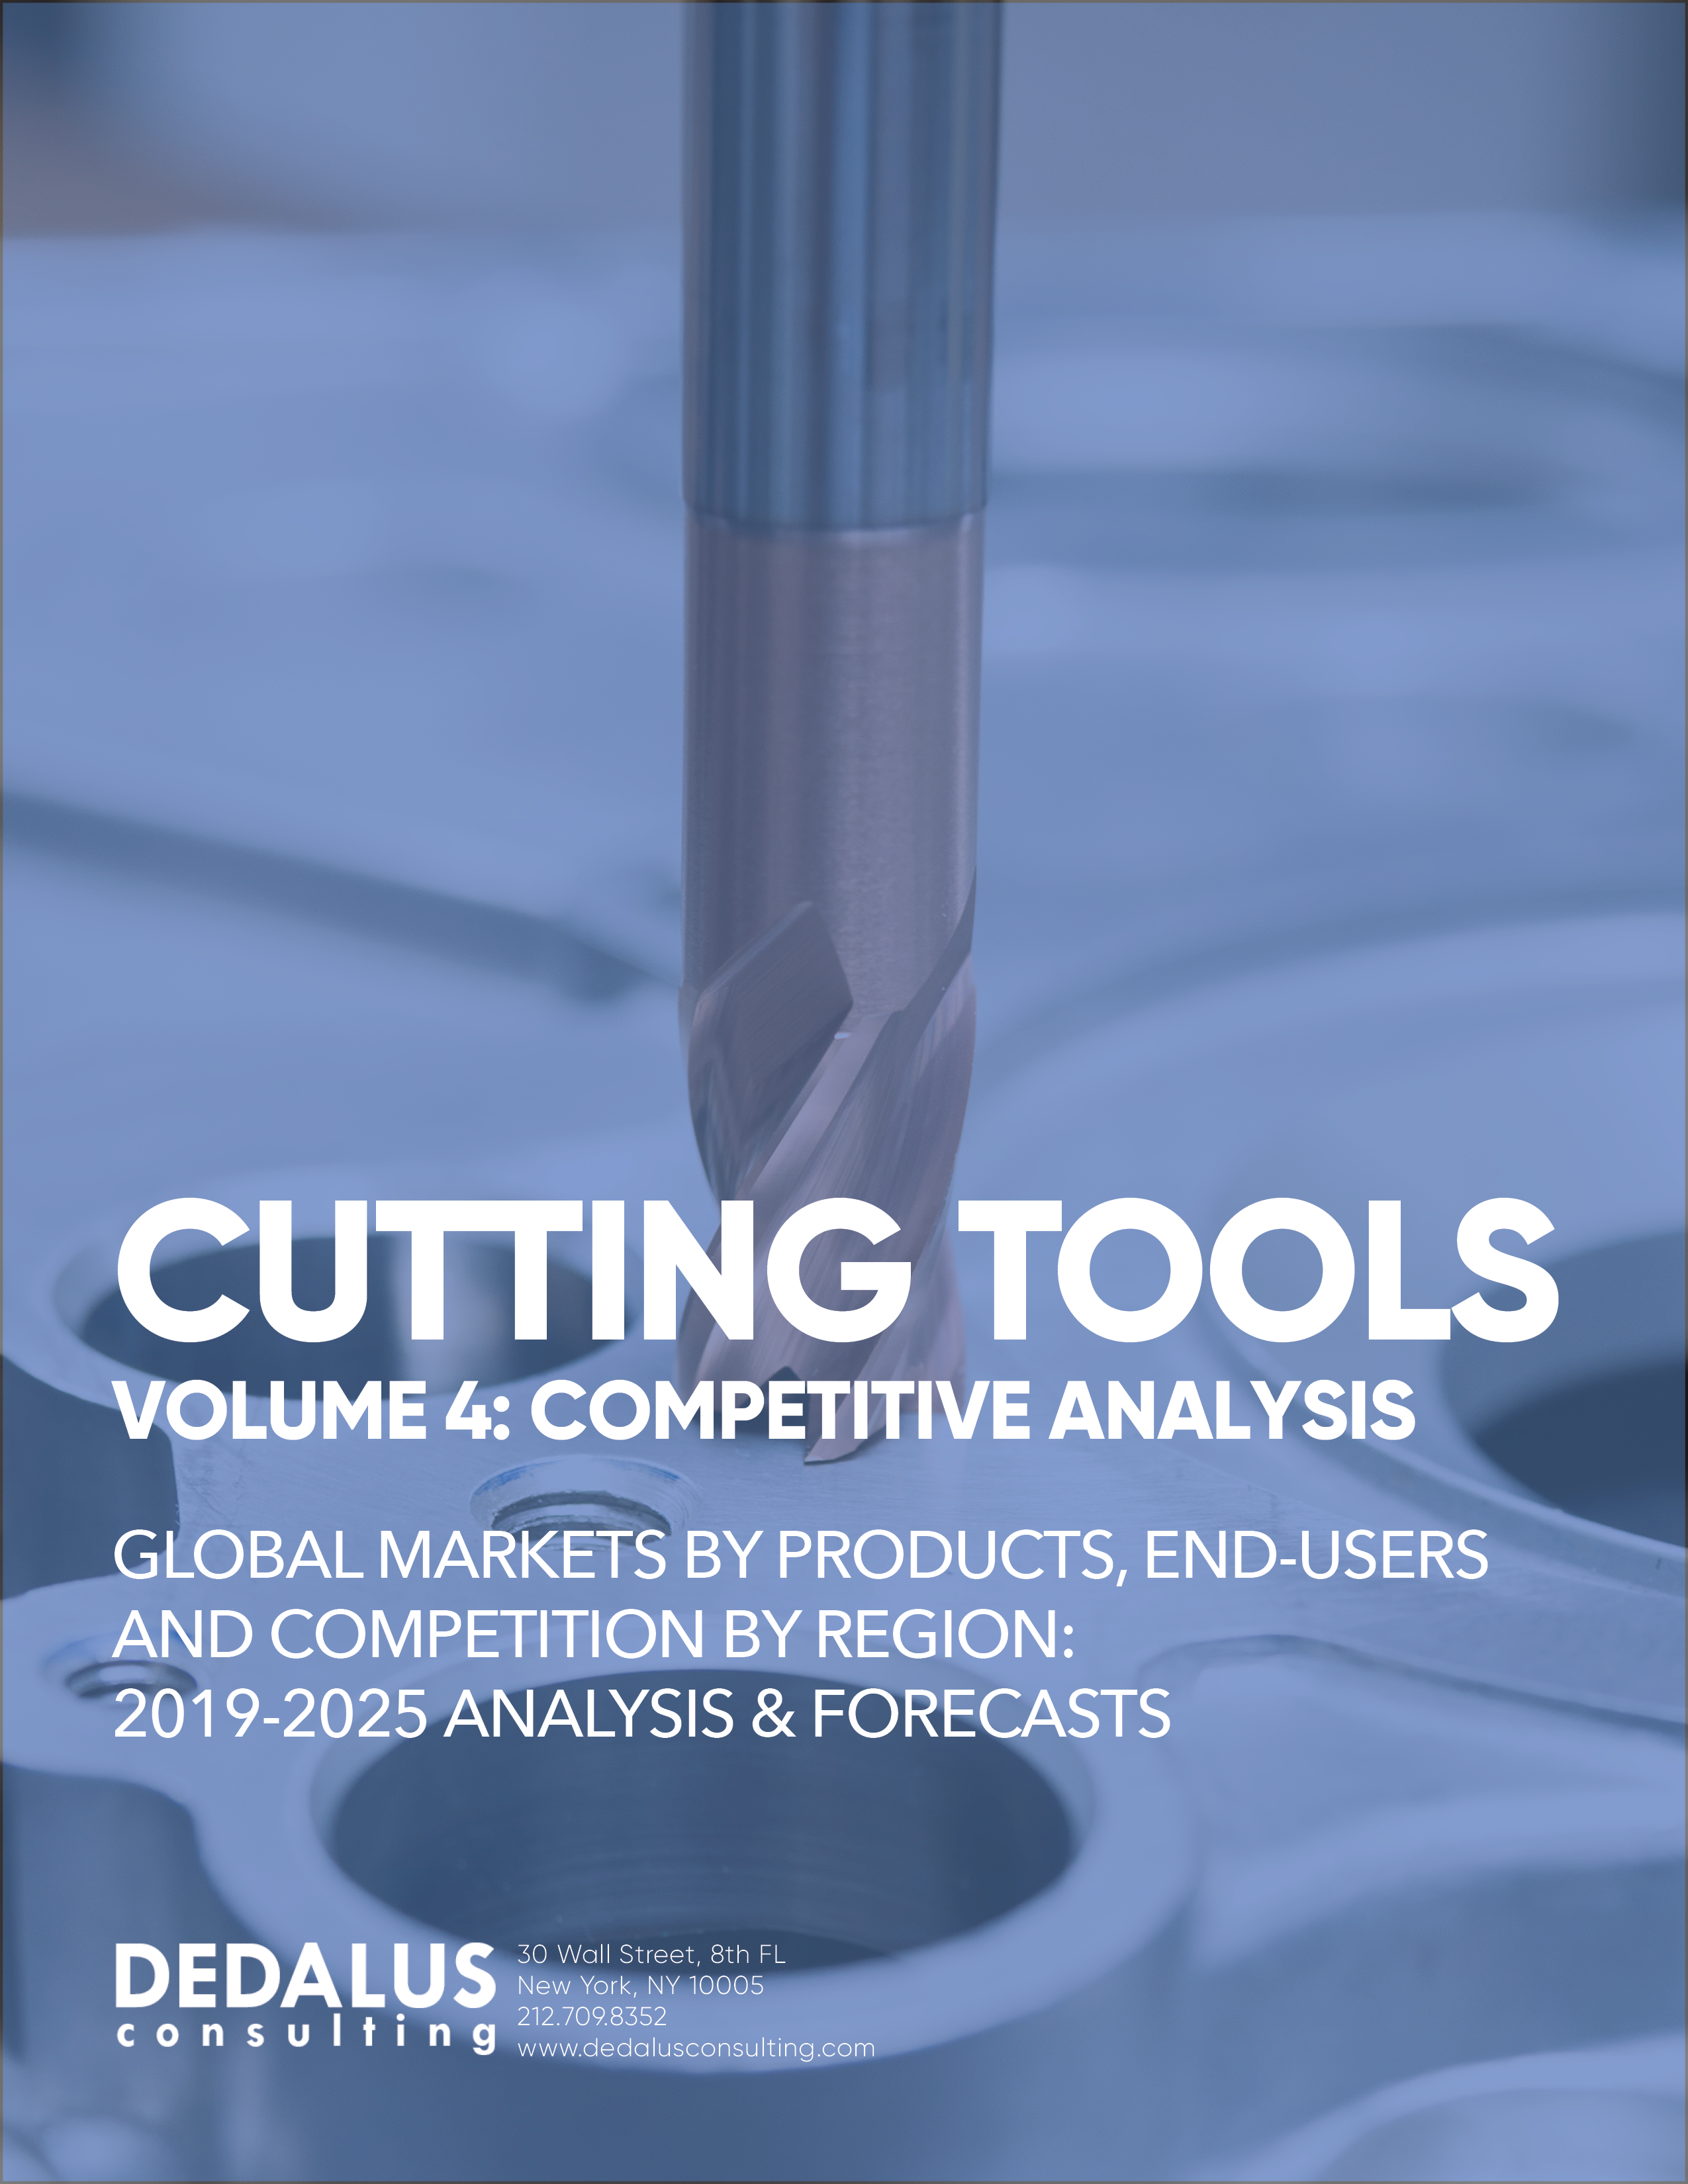 Cutting Tools Volume 4 Report